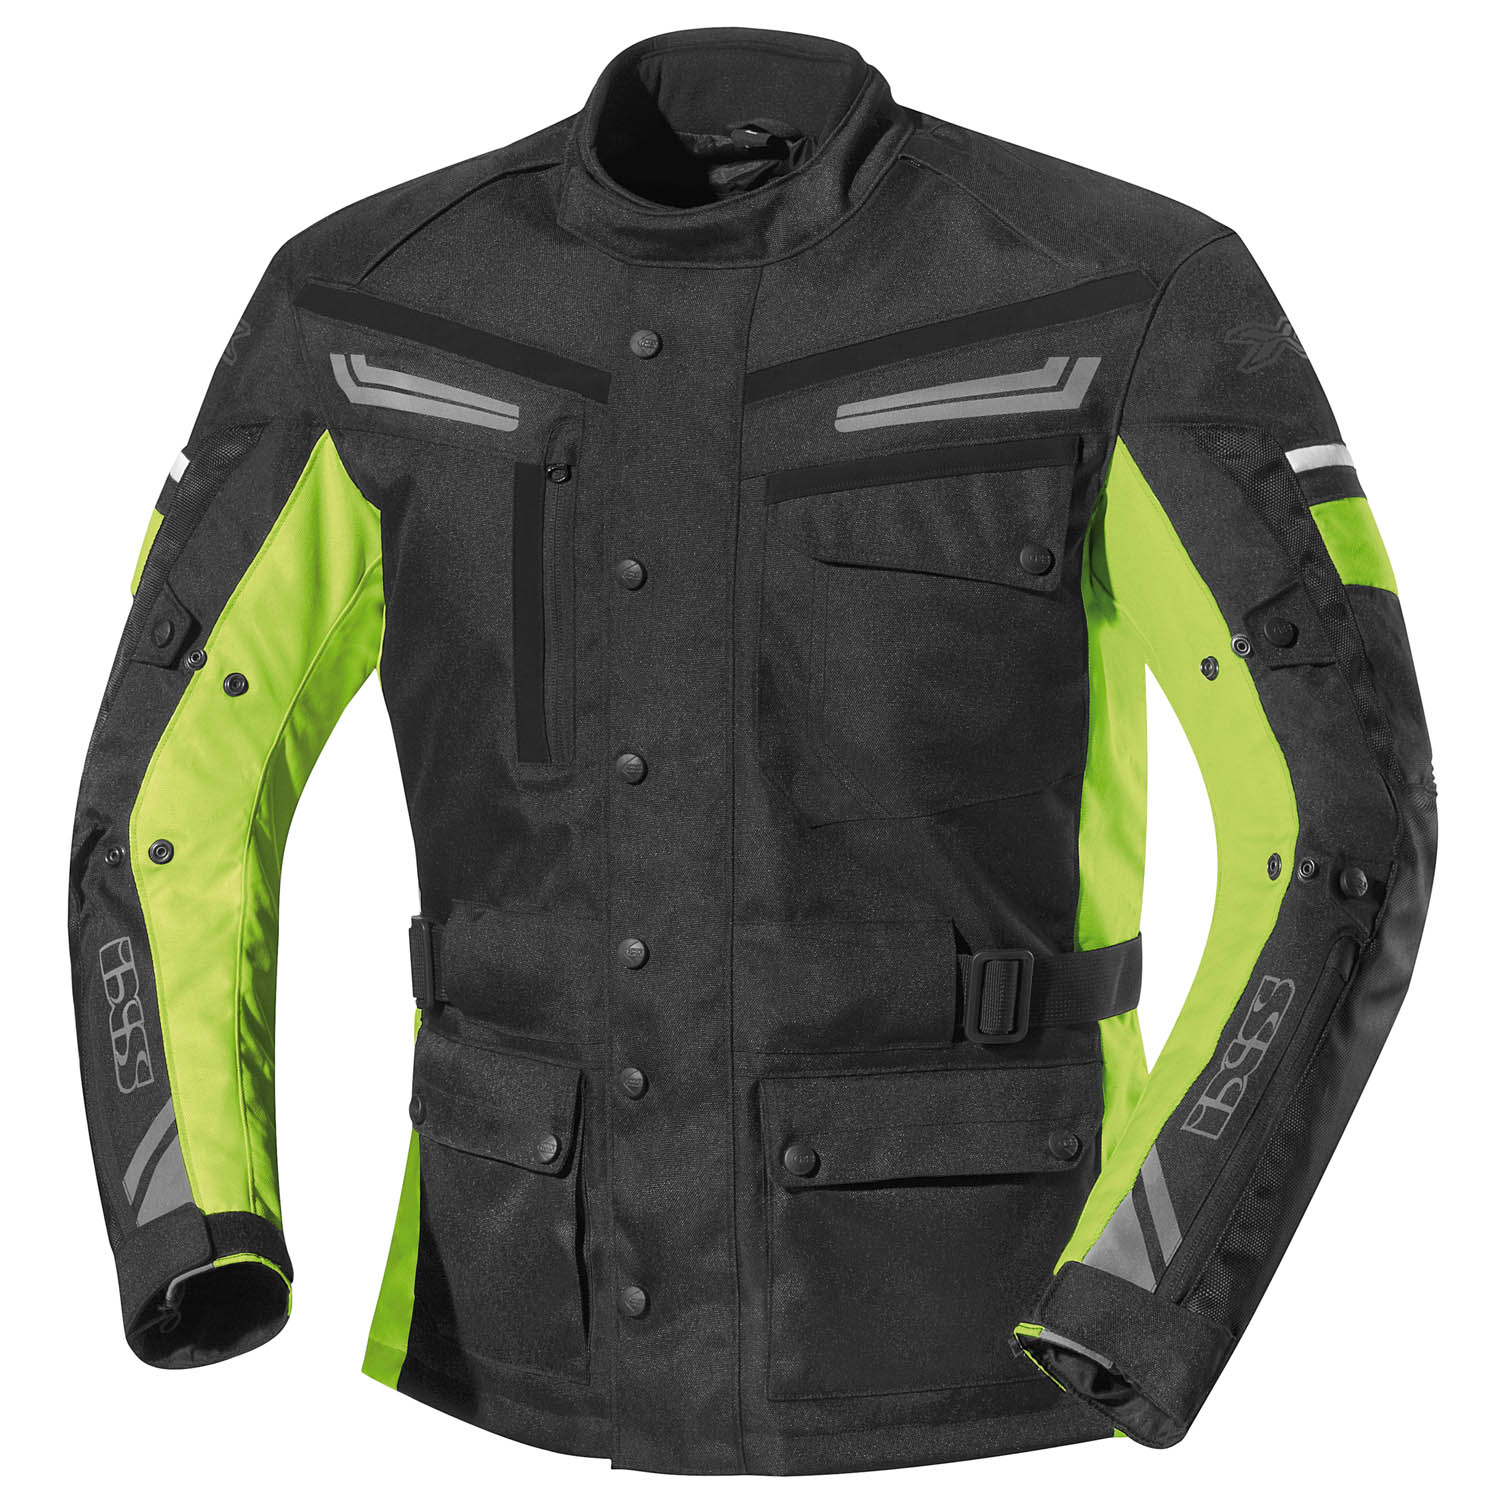 ixs evans motorradjacke herren textil all season schwarz. Black Bedroom Furniture Sets. Home Design Ideas